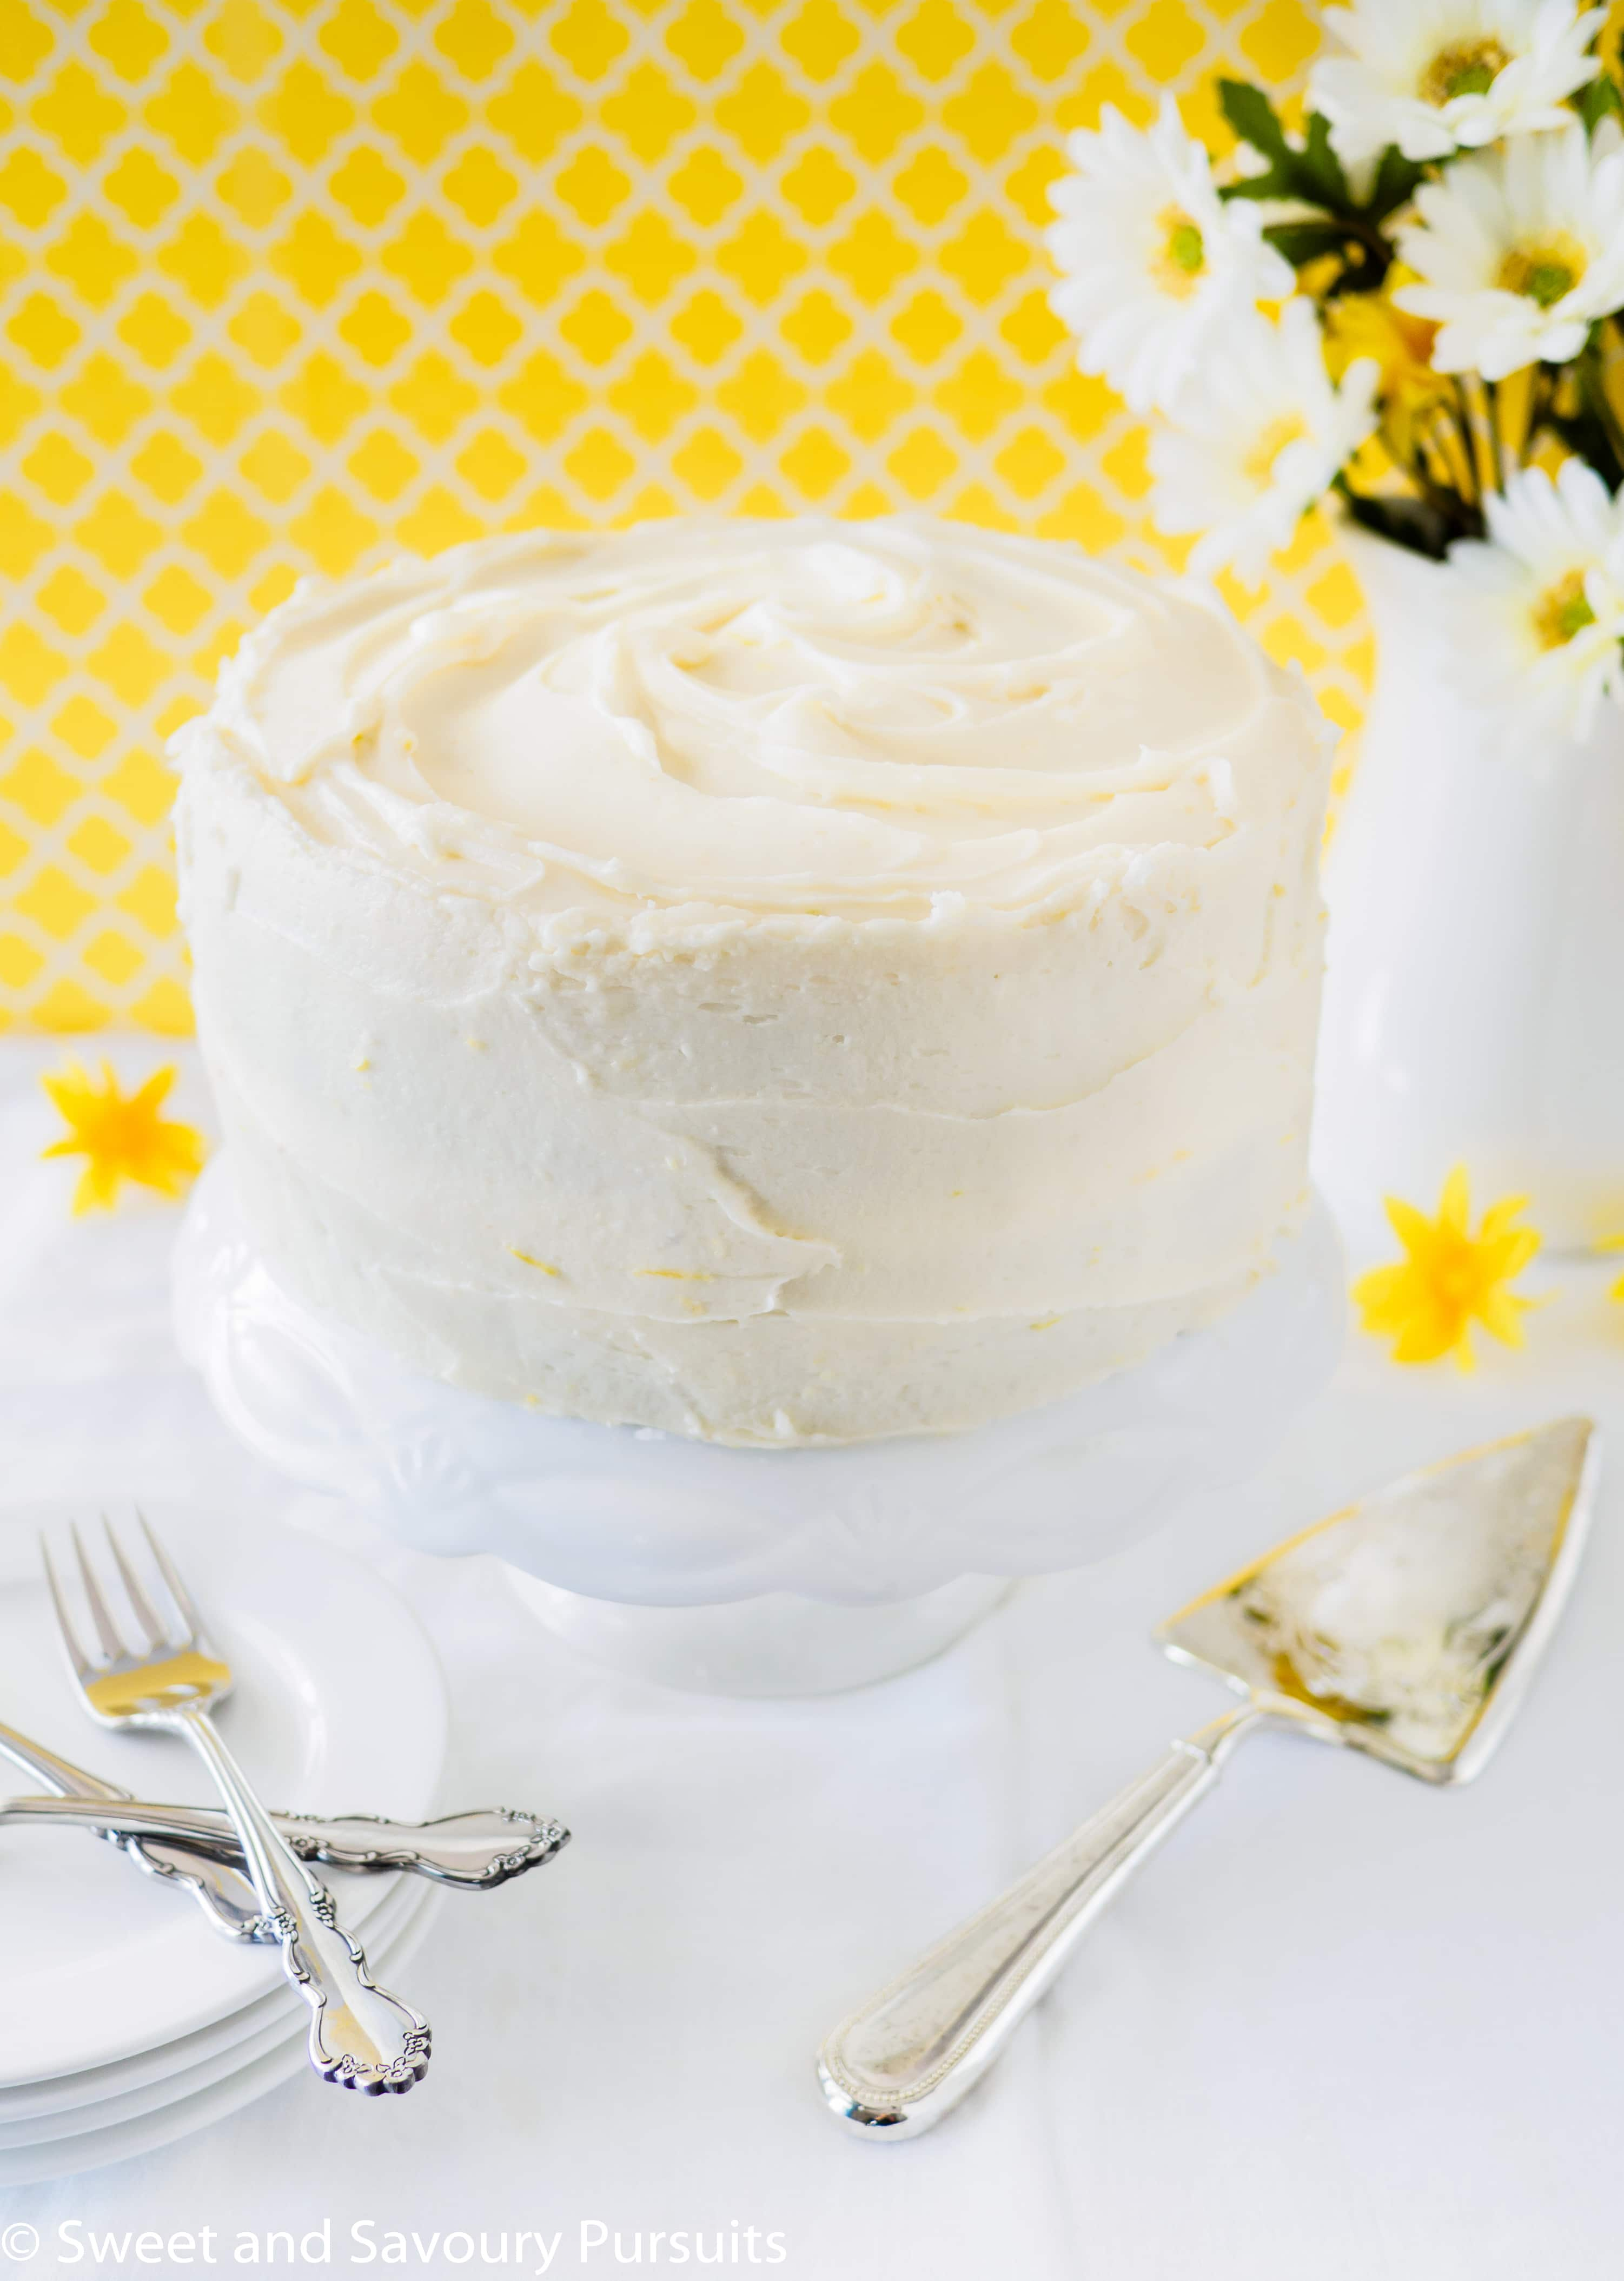 A layered Lemon Poppy Seed Cake frosted with a lemon infused Cream Cheese Frosting.